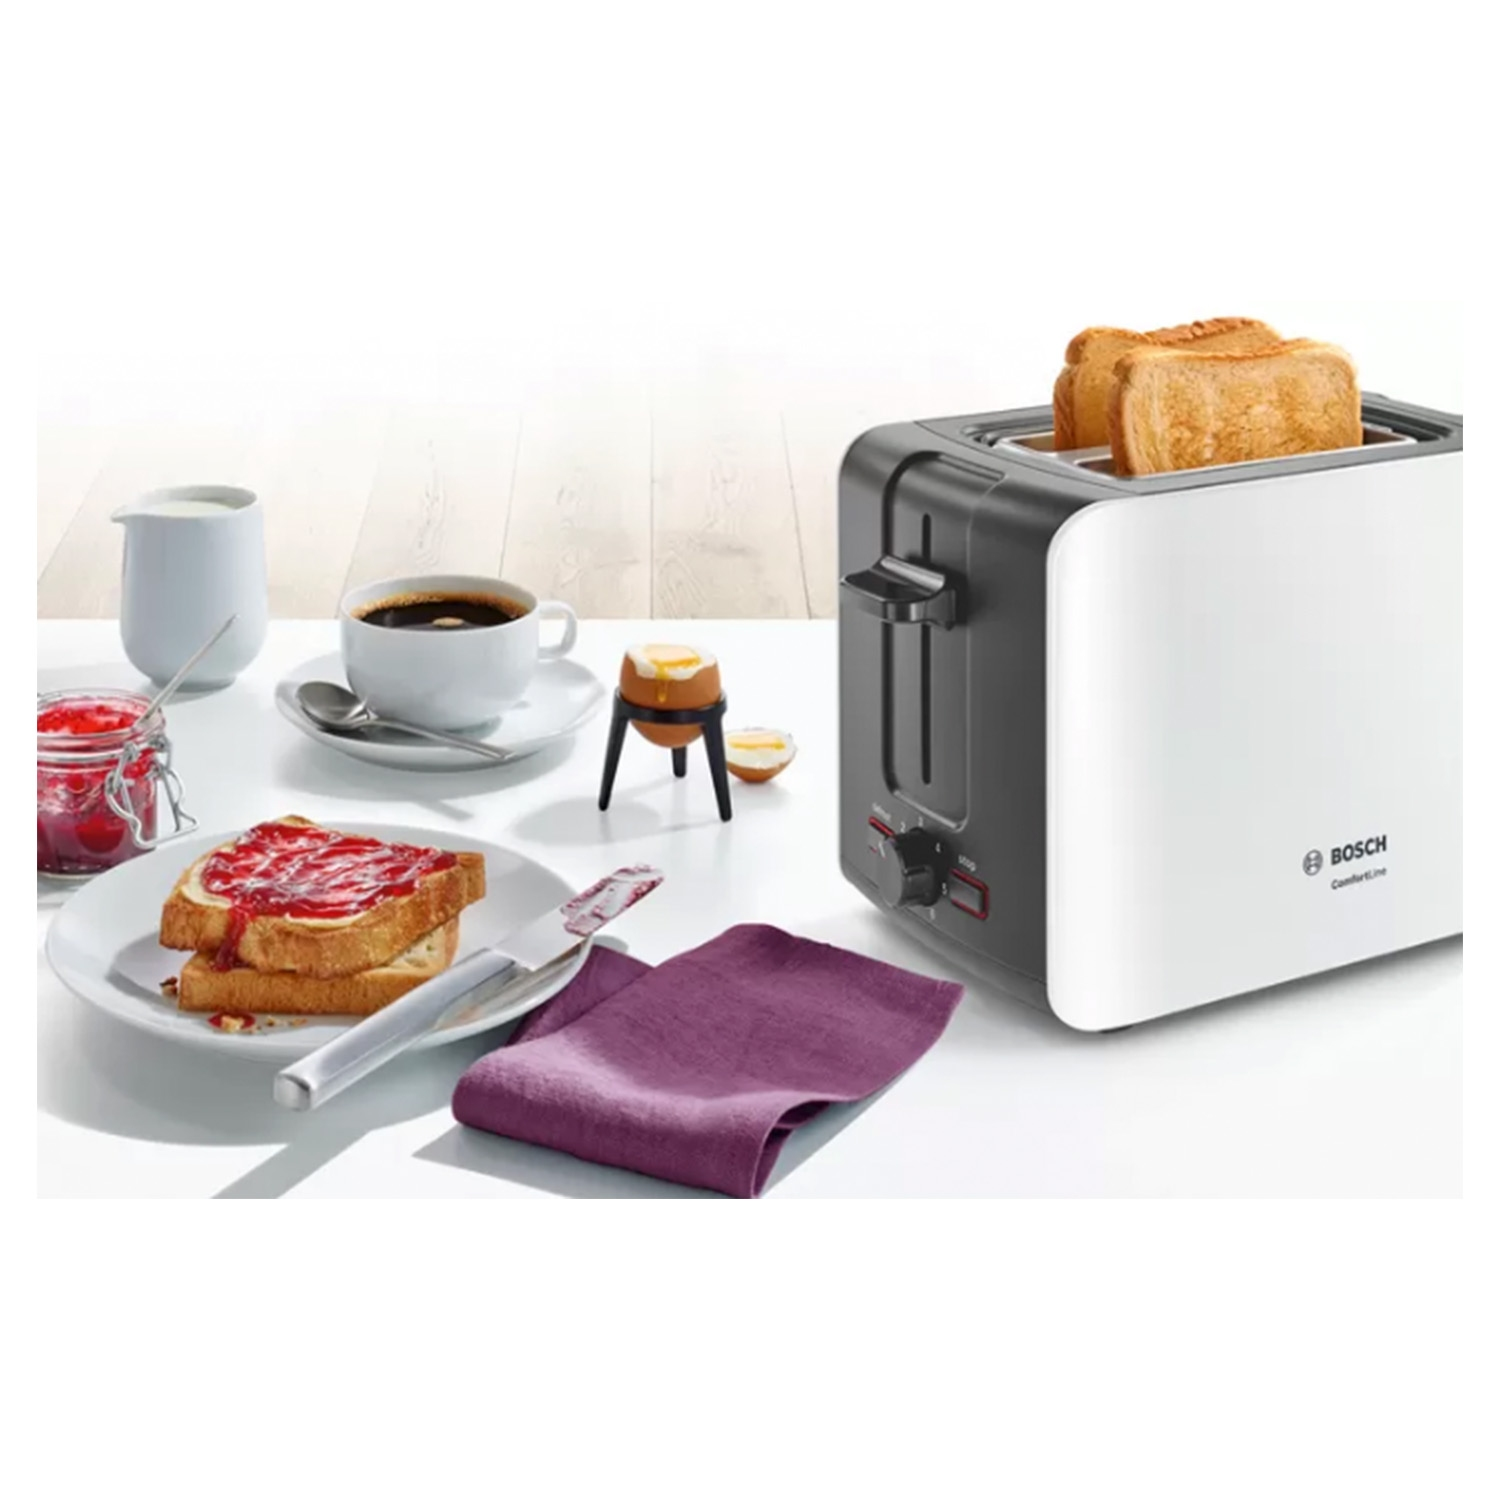 Bosch 2 Slice Toaster - White - 3